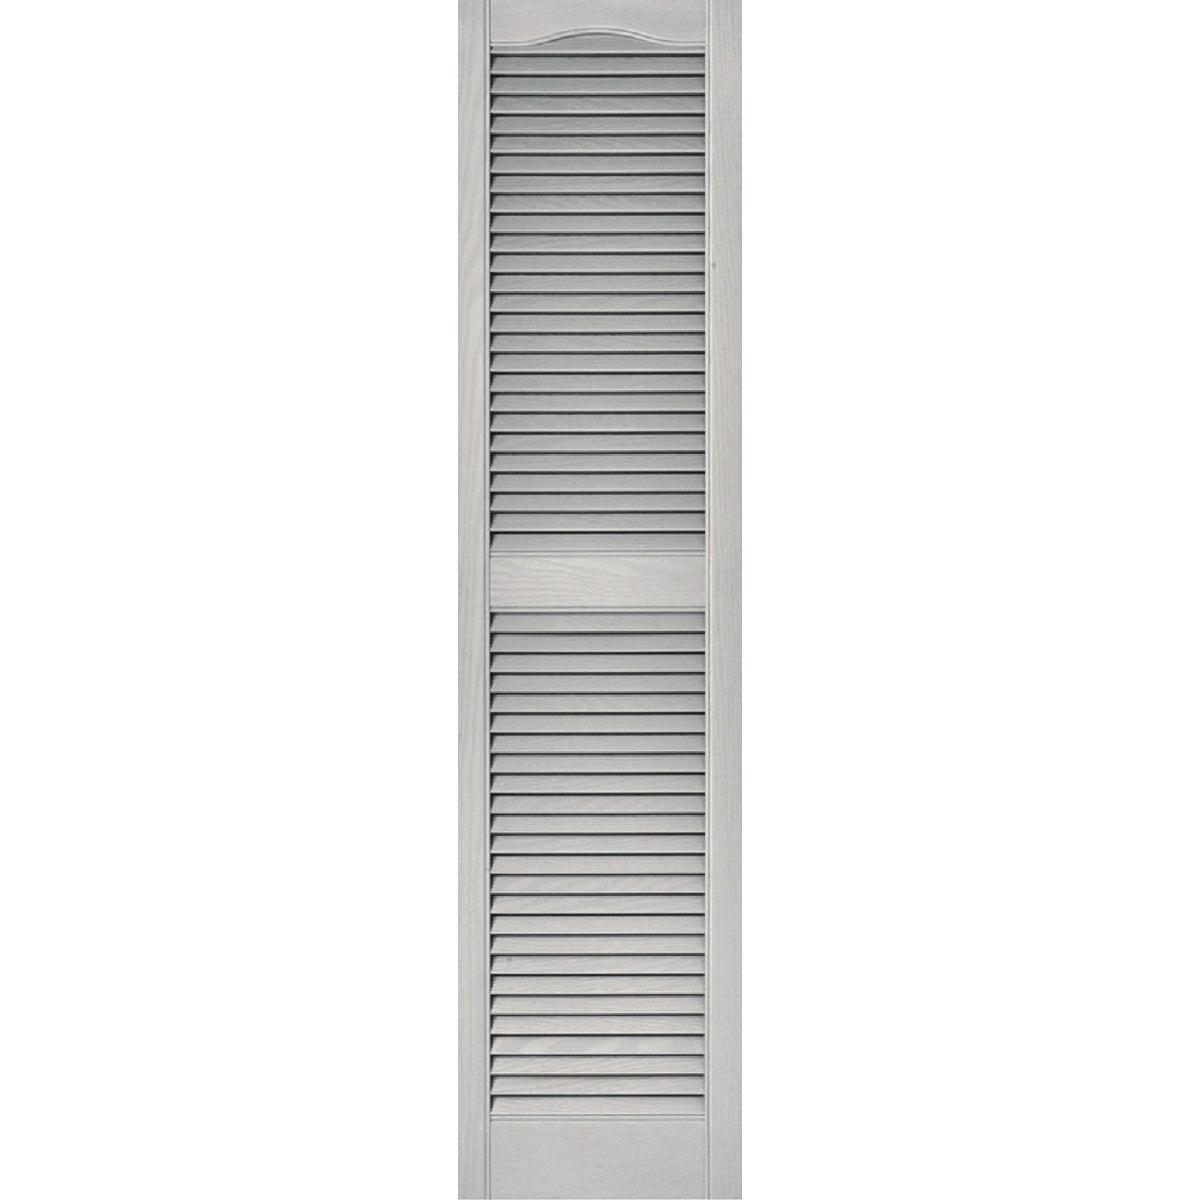 15X55 PBL LOUVER SHUTTER - 020140055030 by The Tapco Group